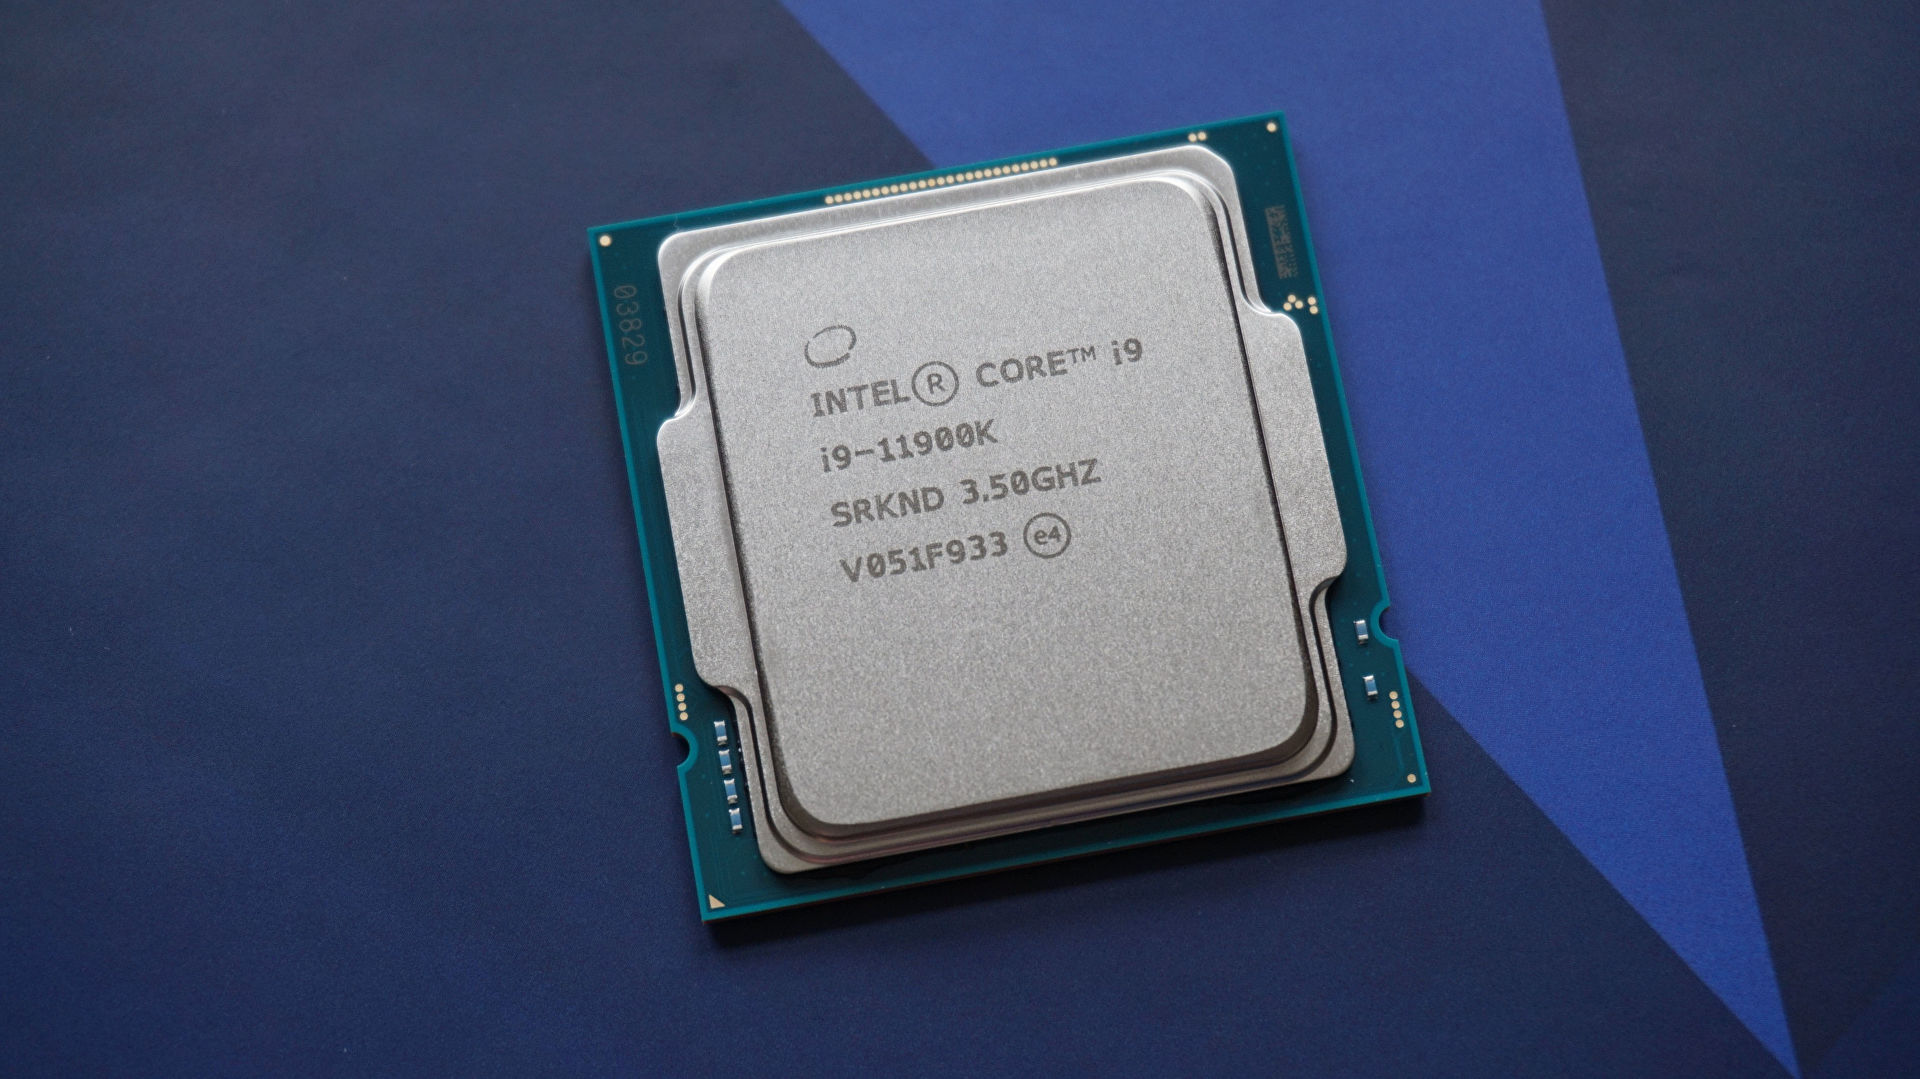 Intel's Core i9-11900K might be down to 8 cores, but its gaming performance is still just as quick